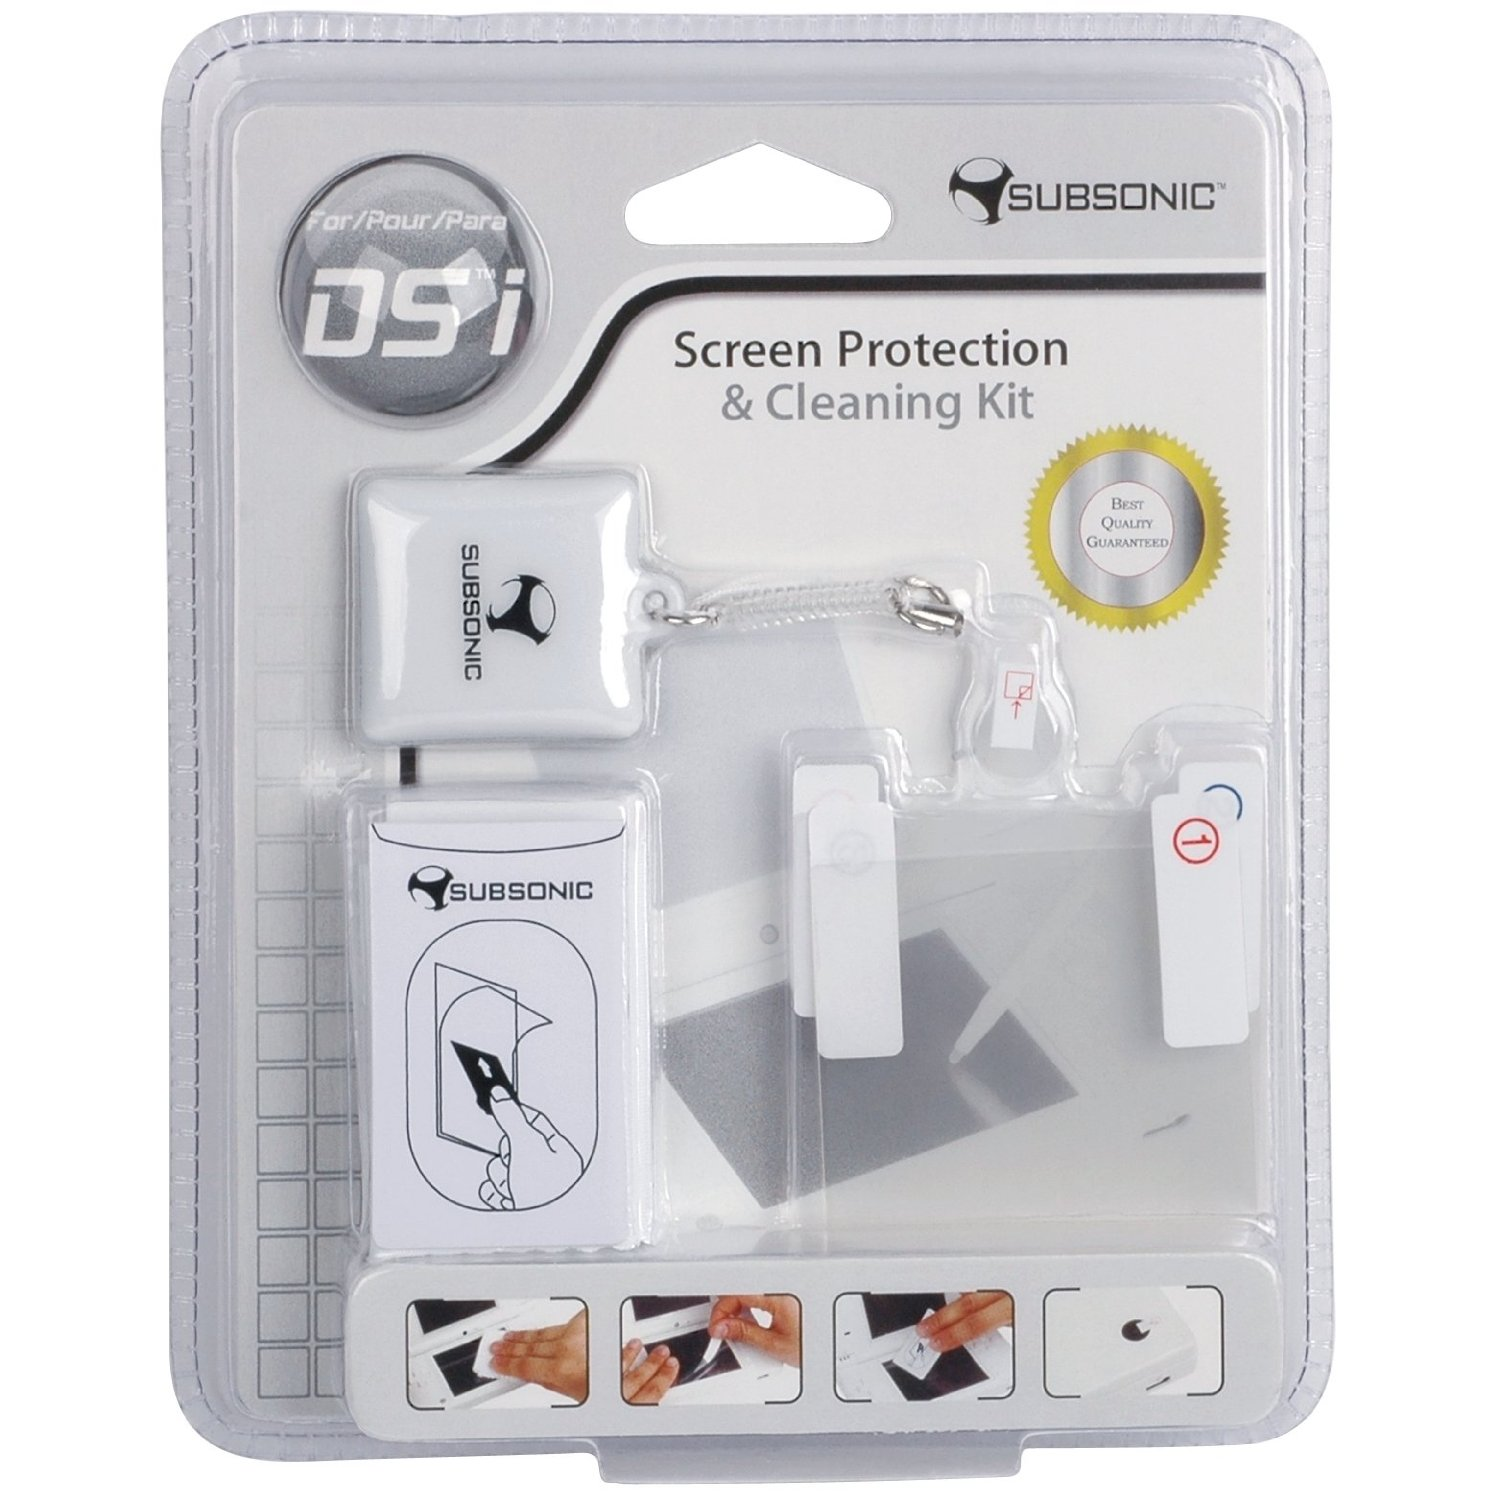 2 air-bubble free high quality screen protectors for DSiProtect against scratches compatible with Touch Screen re-adjustableCamera lens protector for DSiMicrofiber cleaning cloth against dust and finger marksMini anti-fi... (Barcode EAN=3760137145780